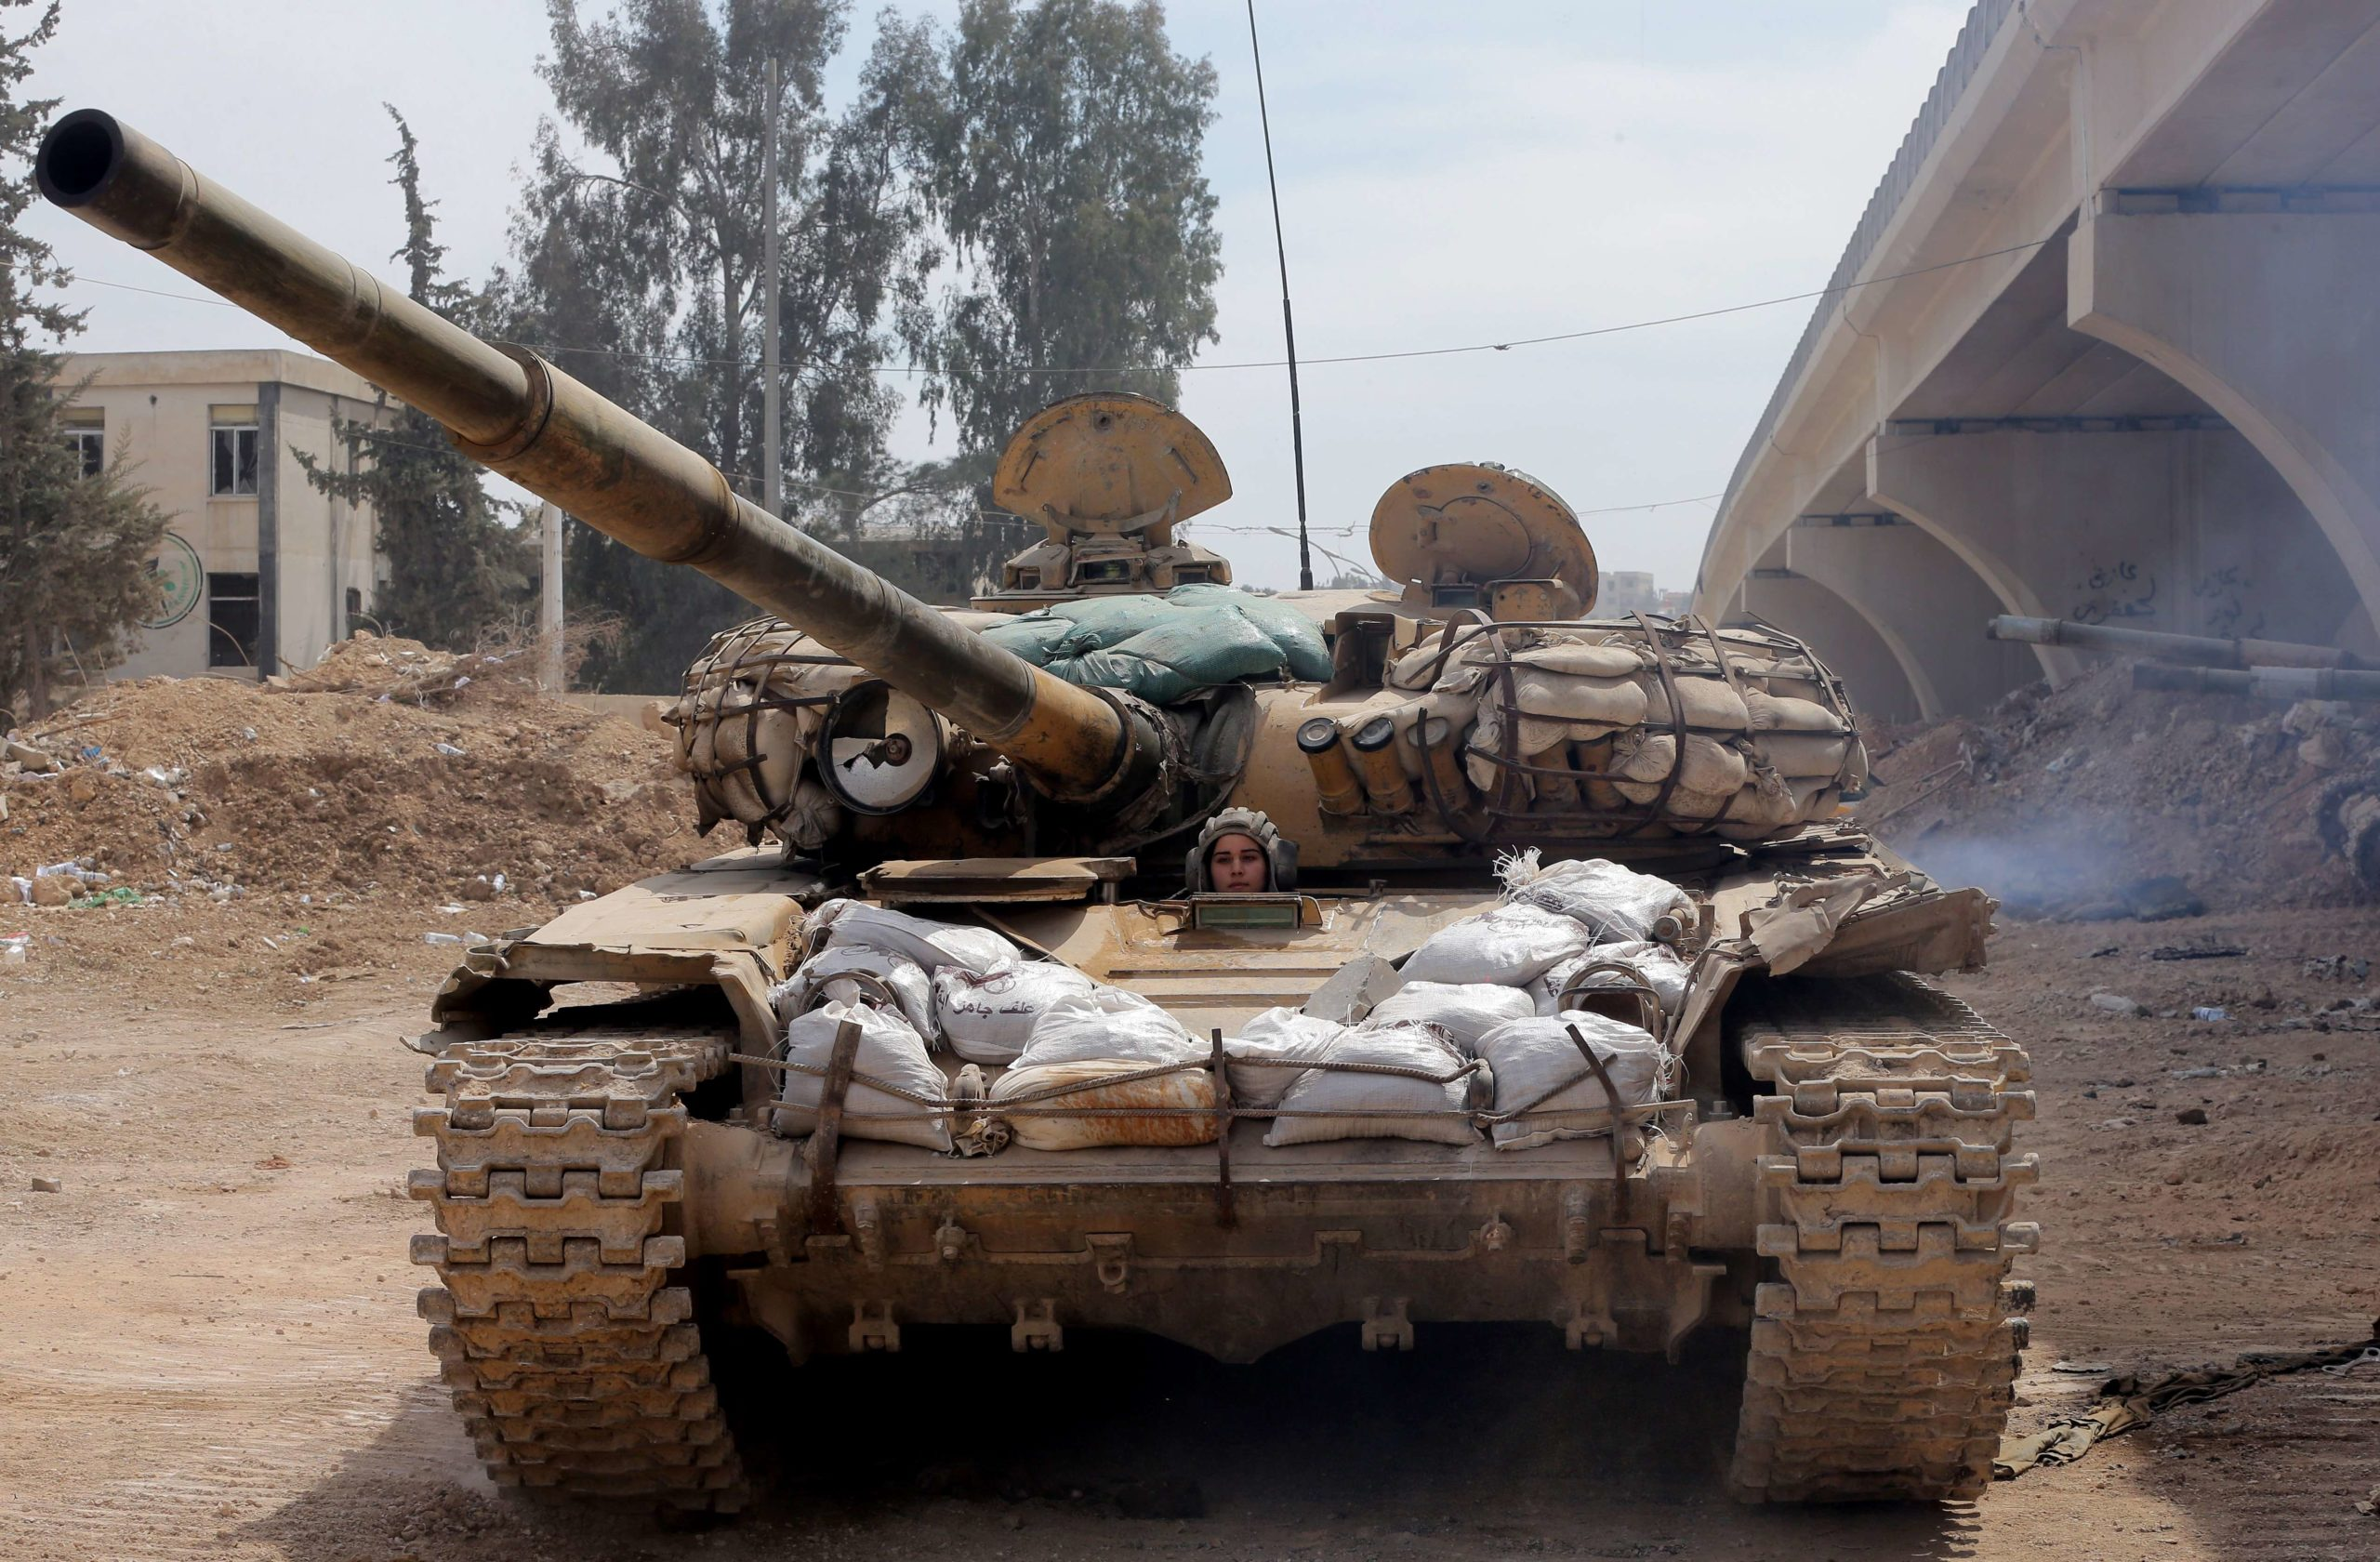 A female Syrian soldier from the Republican Guard commando battalion drives a tank during clashes with rebels in the restive Jobar area, in eastern Damascus, on March 25, 2015. The female battalion, which was created nearly a year ago, consists of 800 female soldiers who are positioned in the suburbs of the Syrian capital where they monitor and secure the frontlines with snipers, rockets and machine guns. AFP PHOTO / JOSEPH EIDJOSEPH EID/AFP/Getty Images